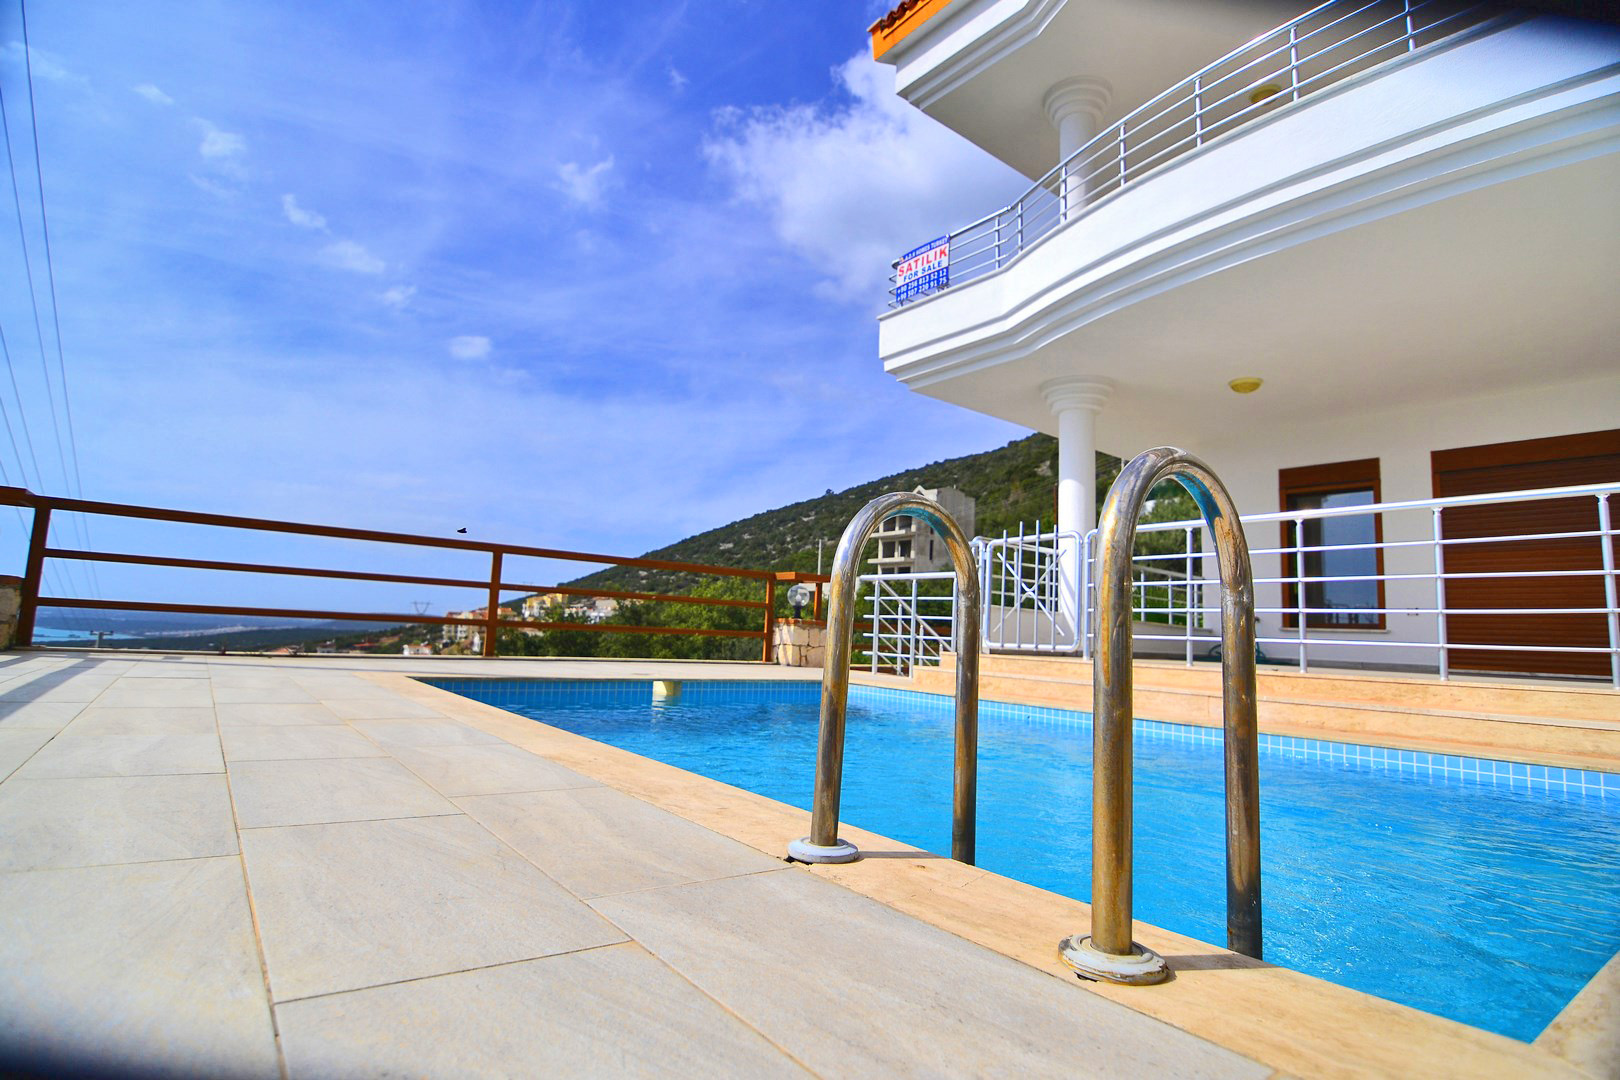 Detached Villa with private pool for sale in Akbuk (SOLD)